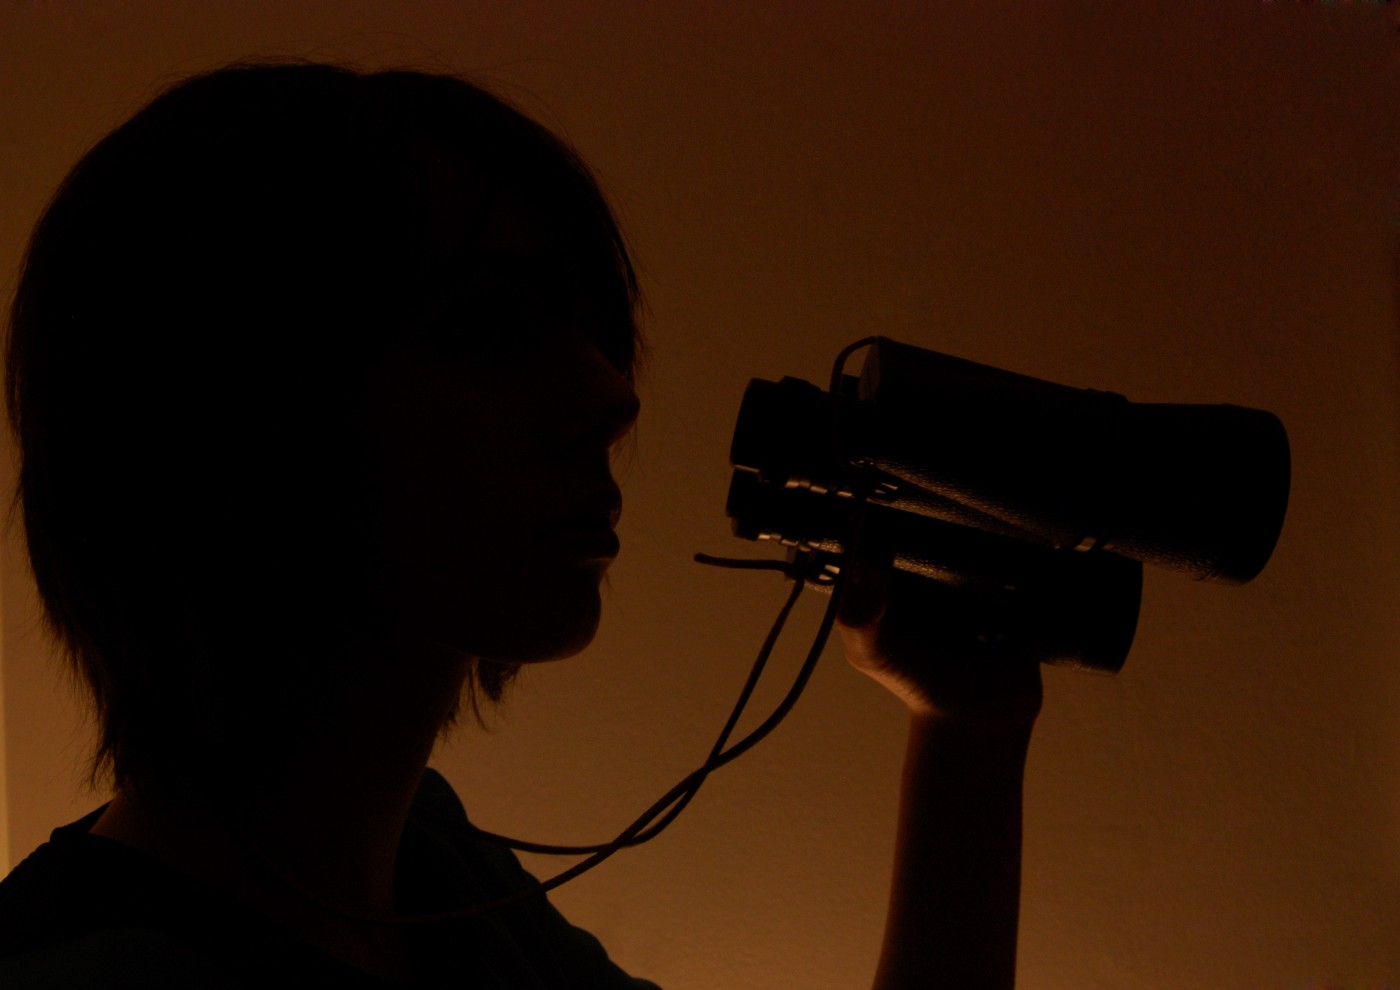 A person with shoulder length hair lit from behind, appearing like a shadow, holding a pair of binoculars